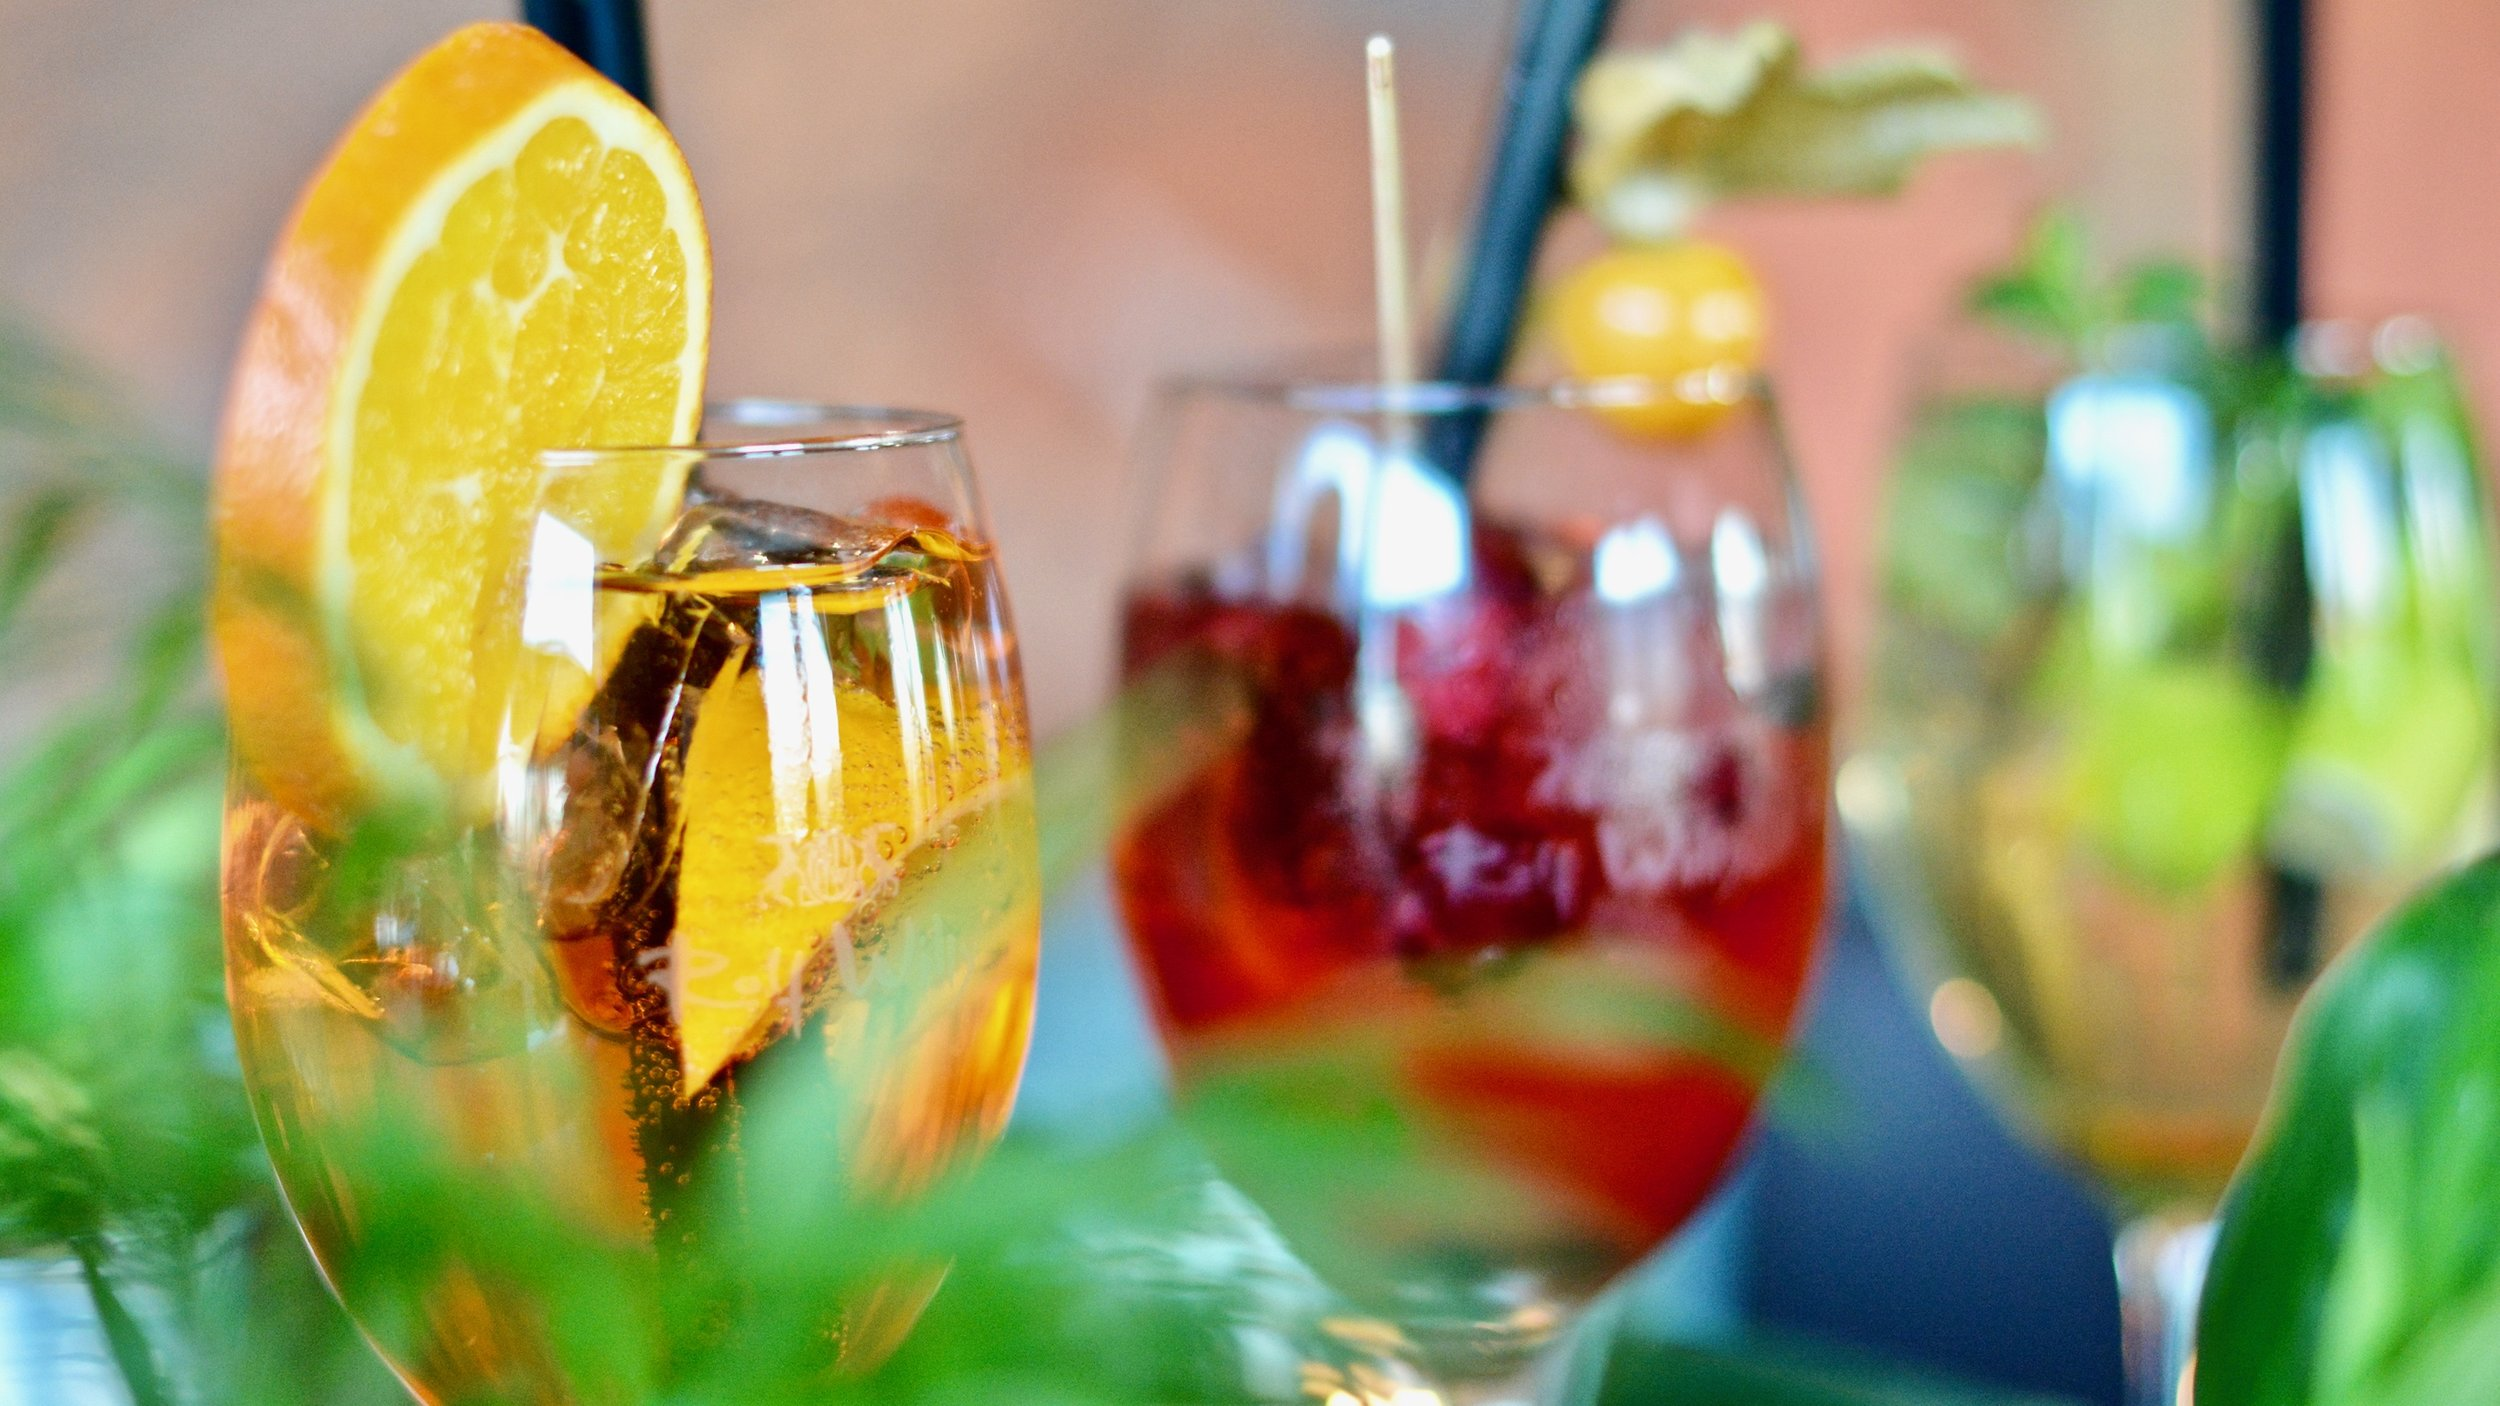 Drinks for picnics this Summer